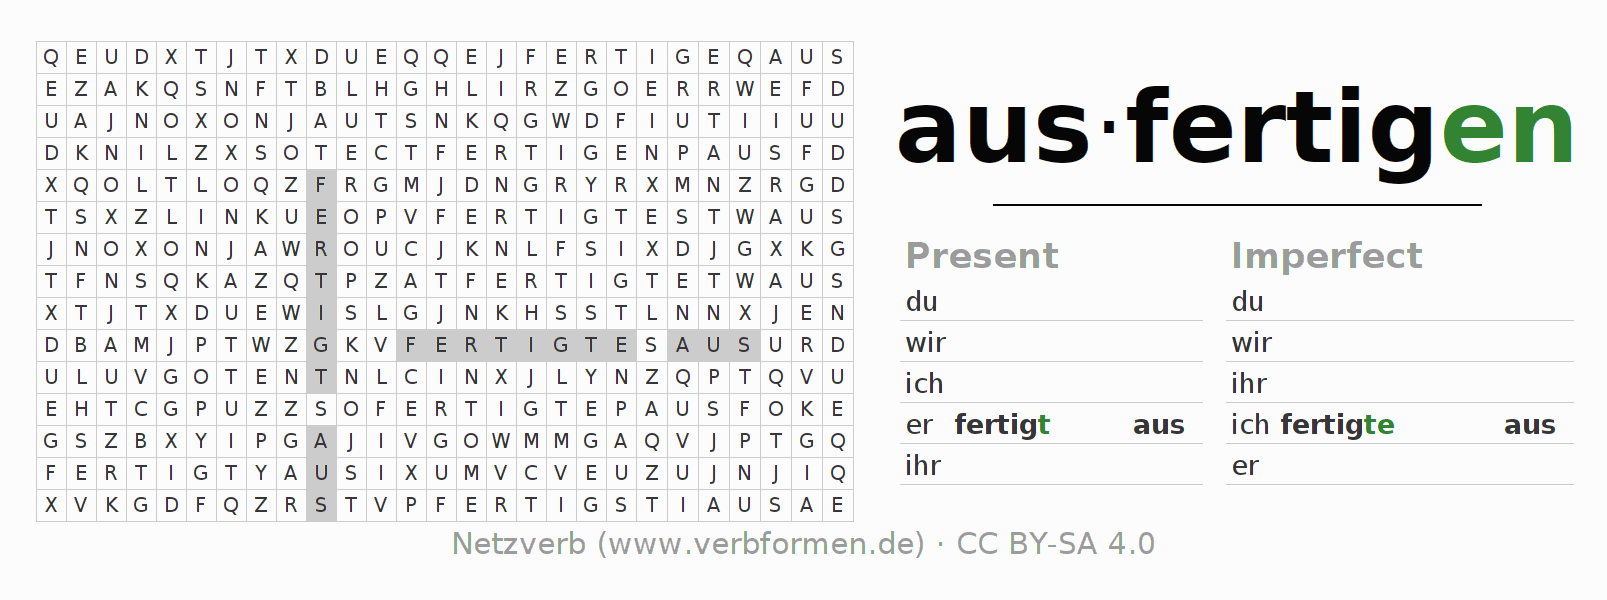 Word search puzzle for the conjugation of the verb ausfertigen